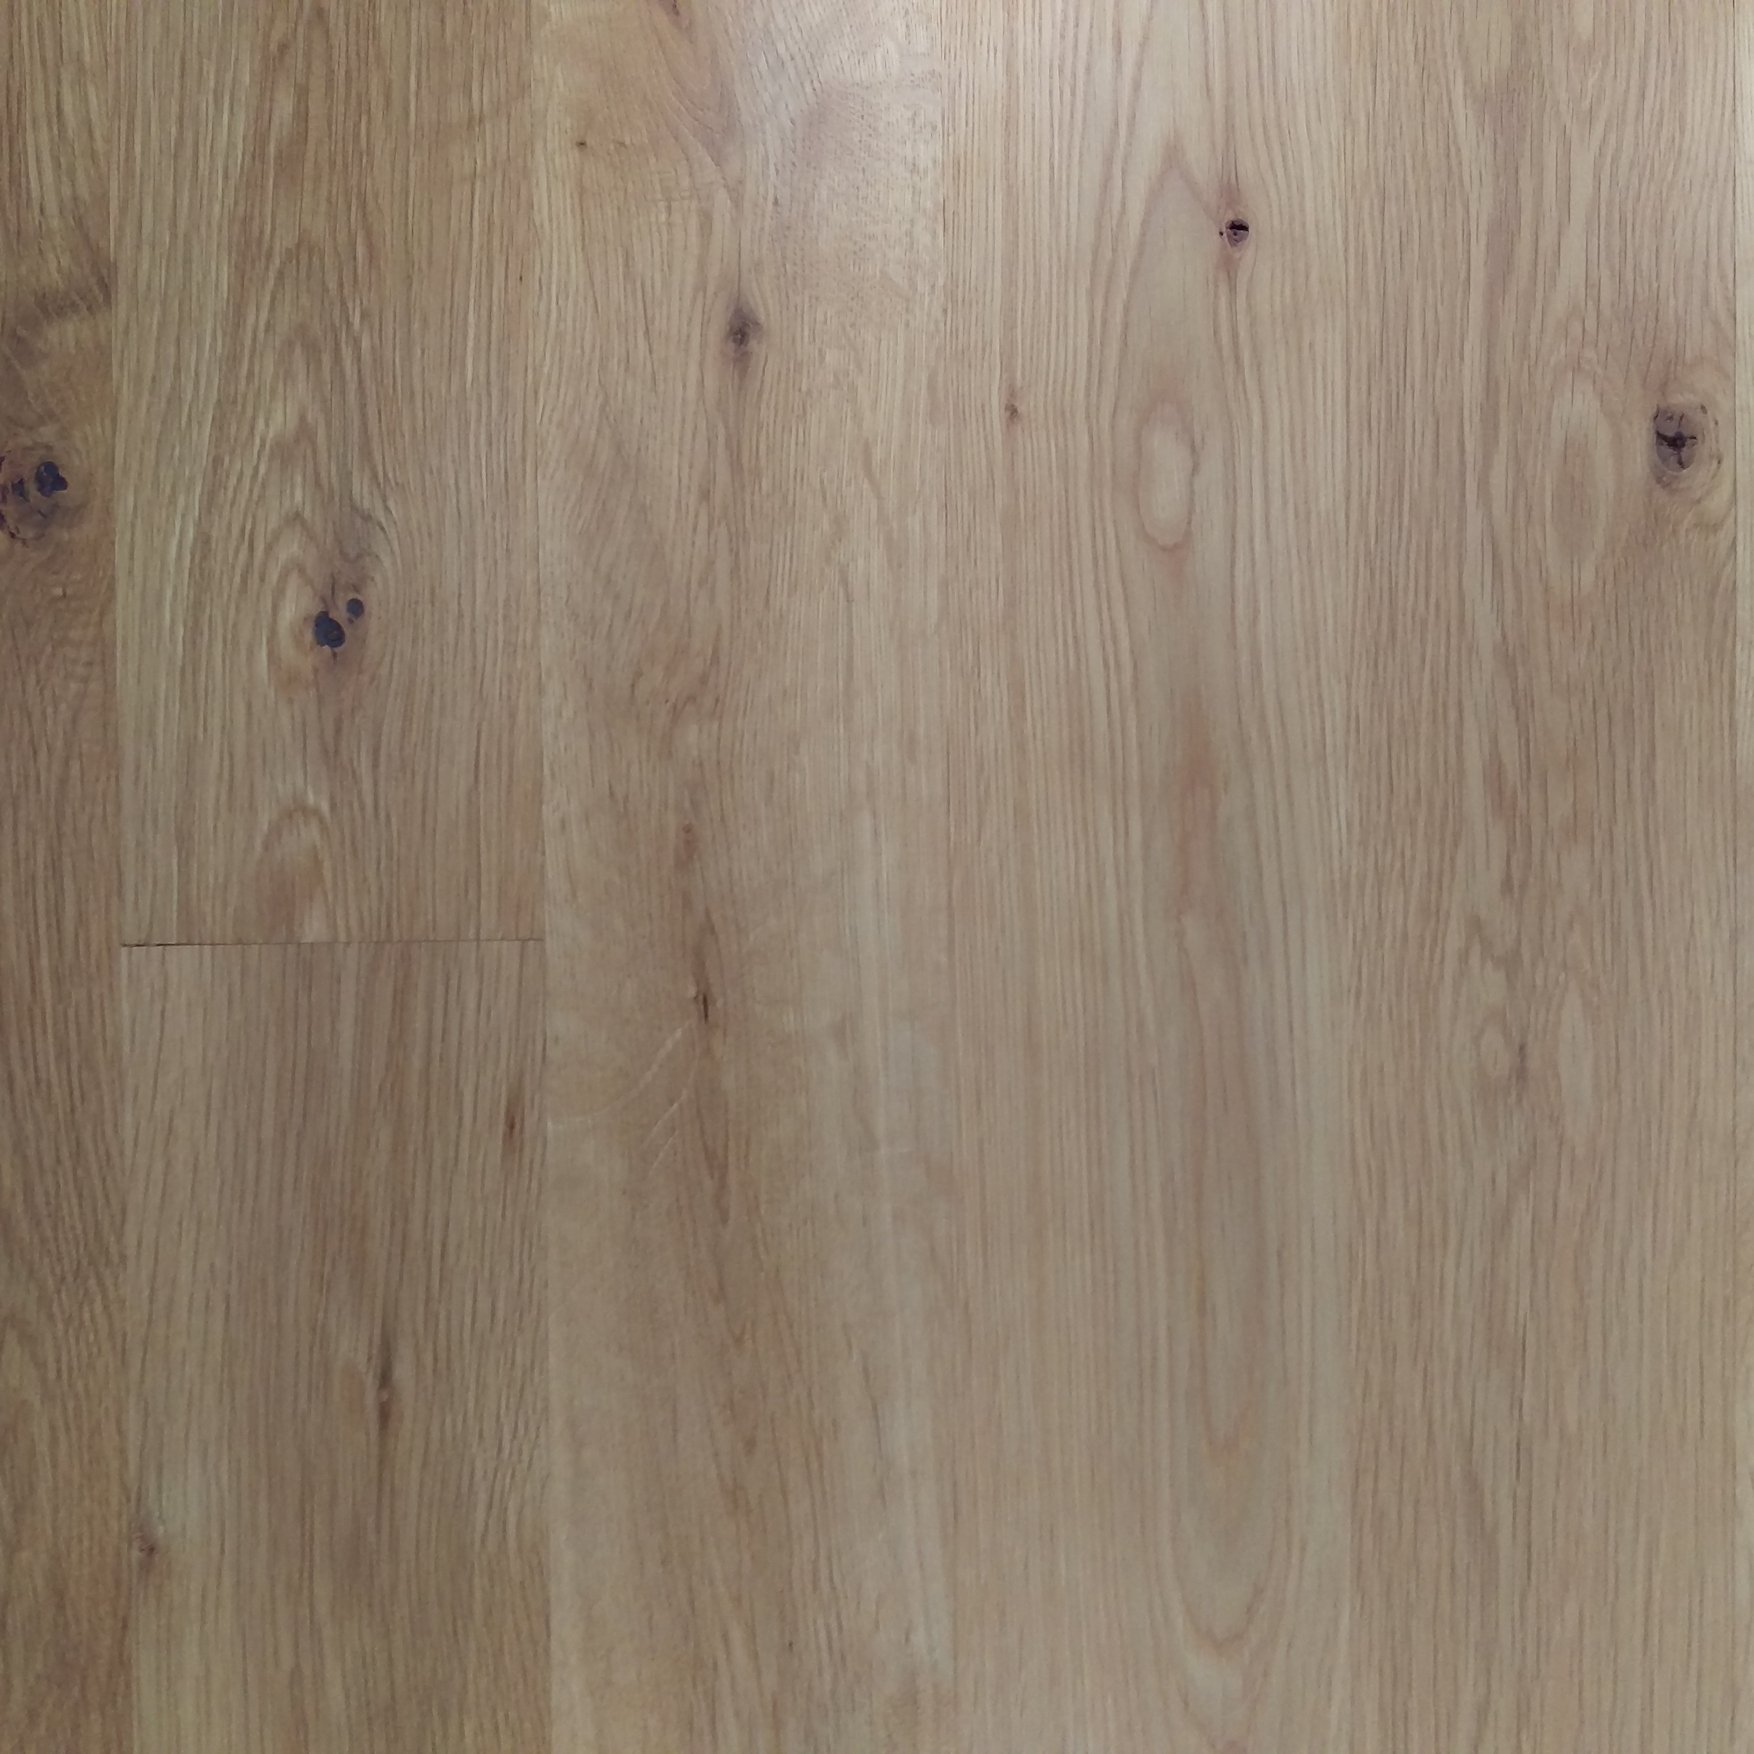 Live-Sawn White Oak - Character grade, available in long lengths.